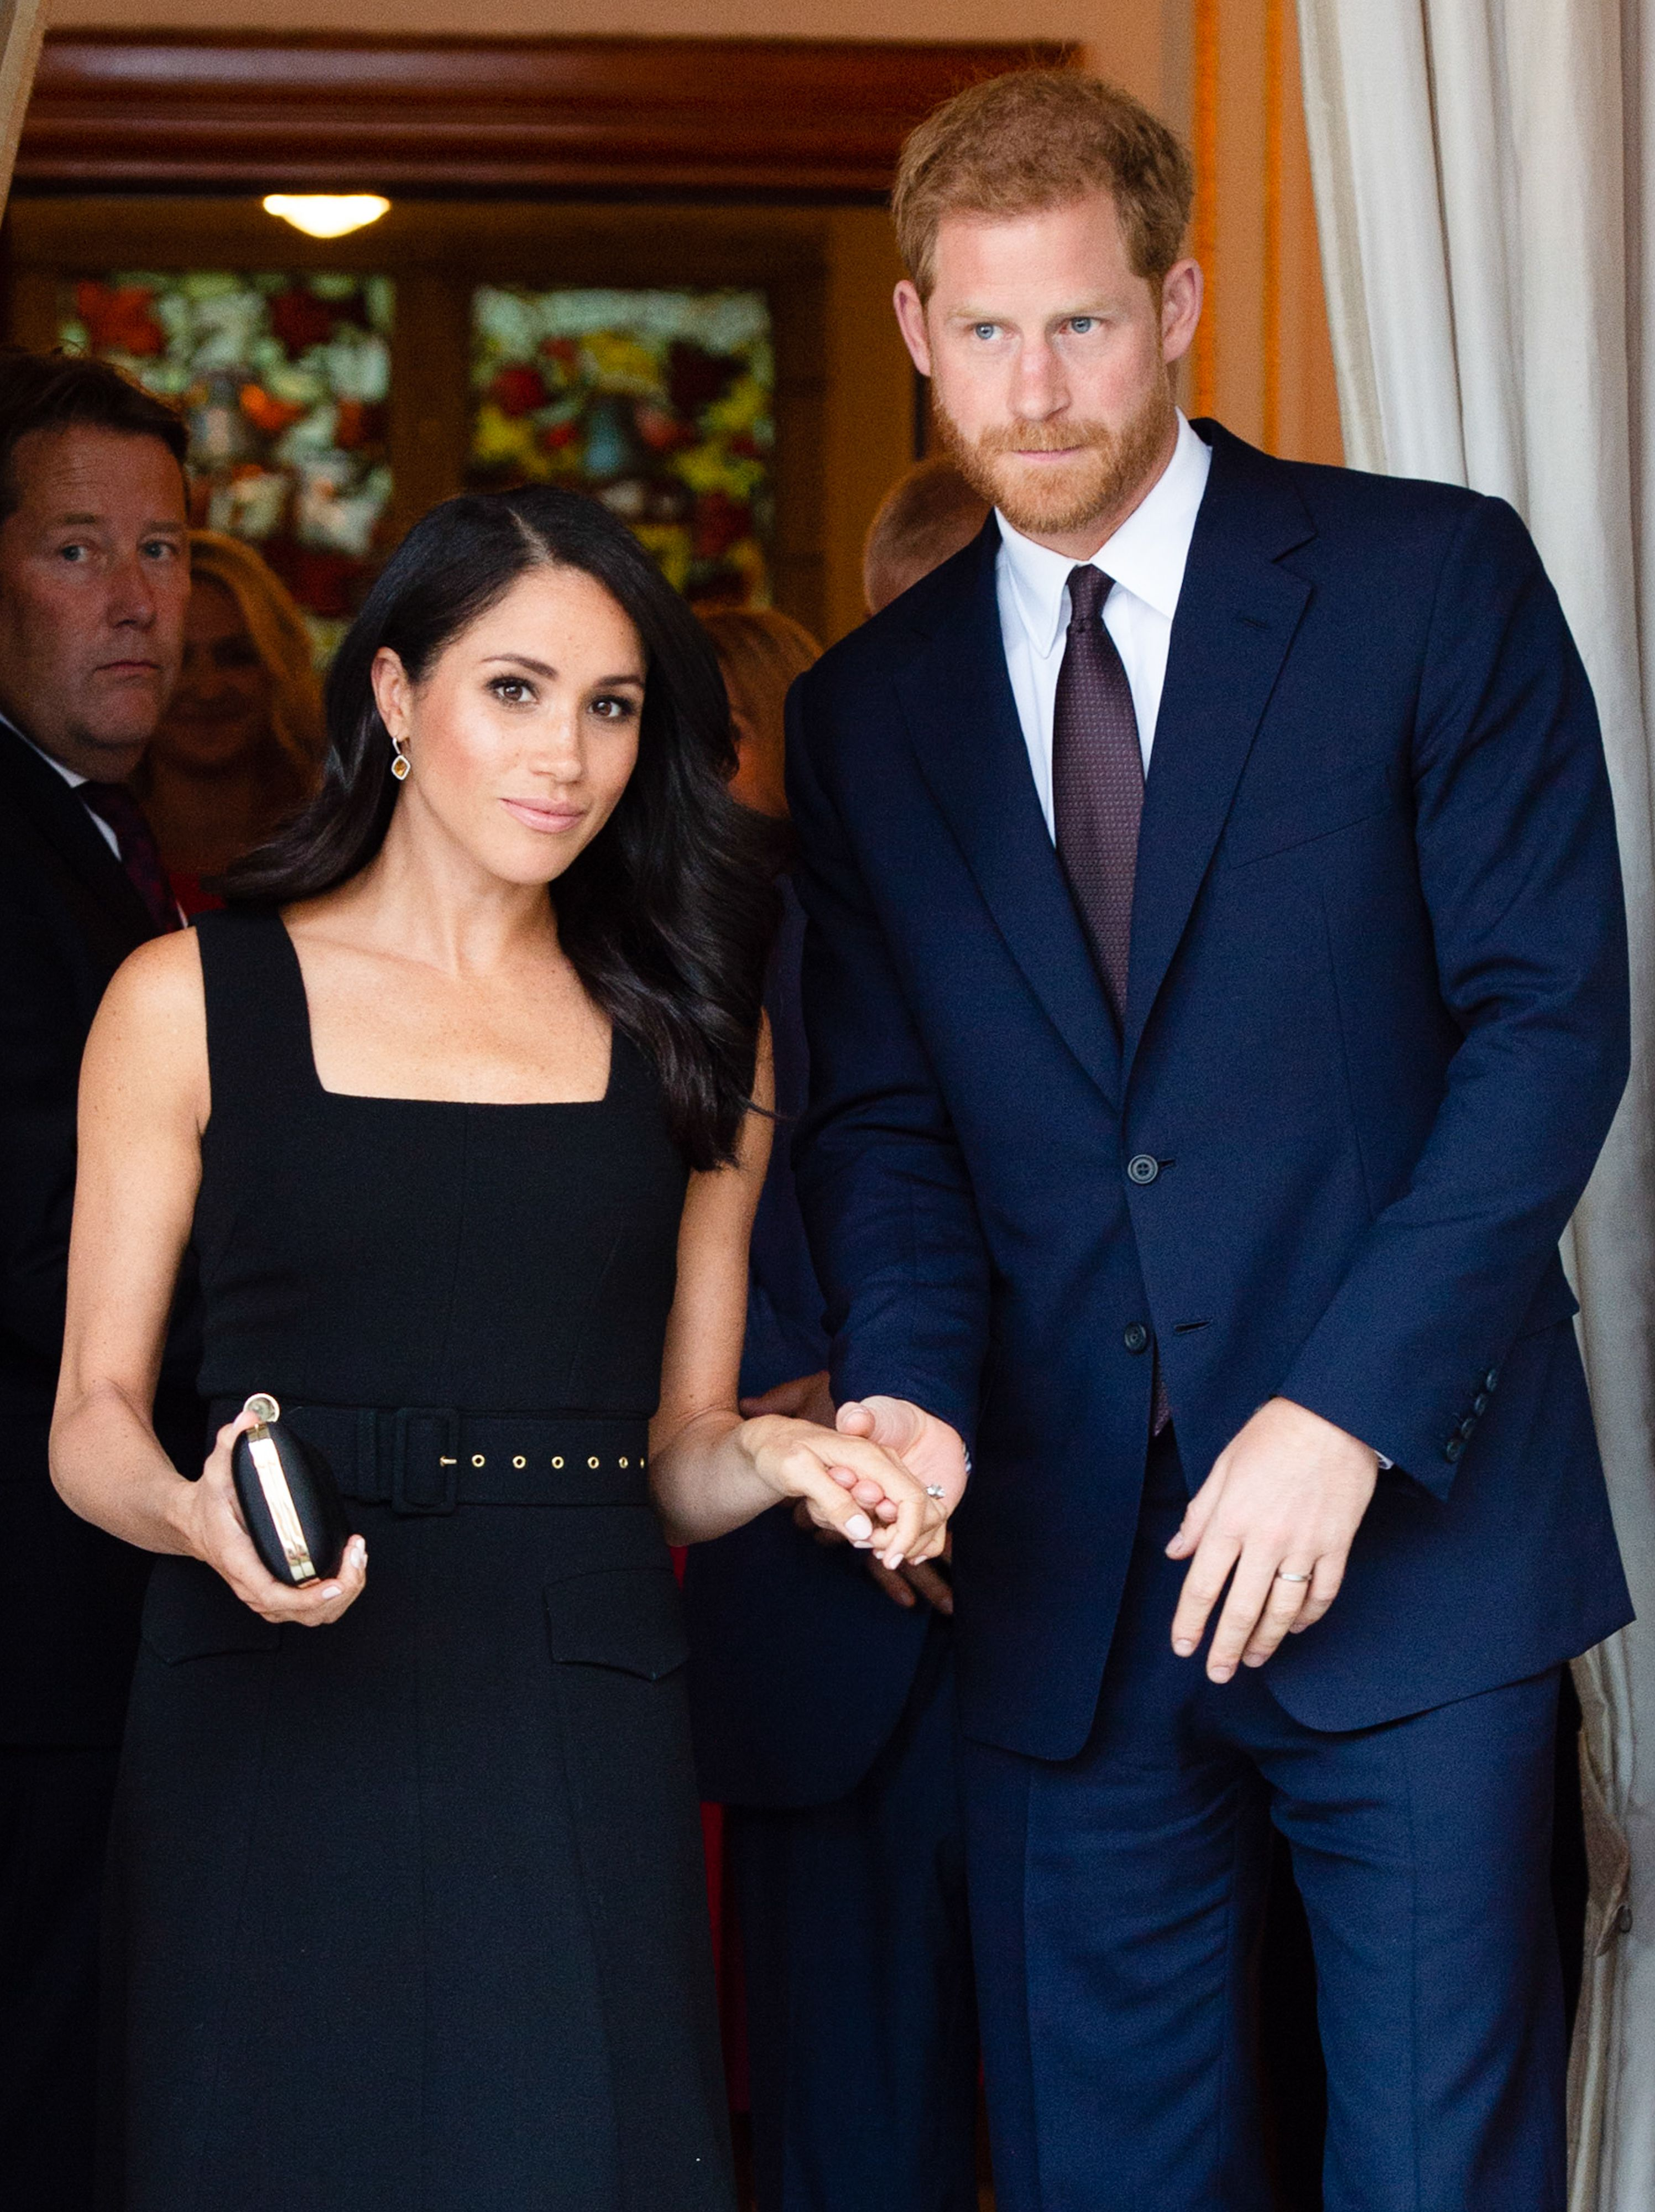 Why Meghan Markle and Prince Harry Weren't Photographed at Misha Nonoo's Pre-Wedding Dinner, but Katy Perry and Karlie Kloss Were